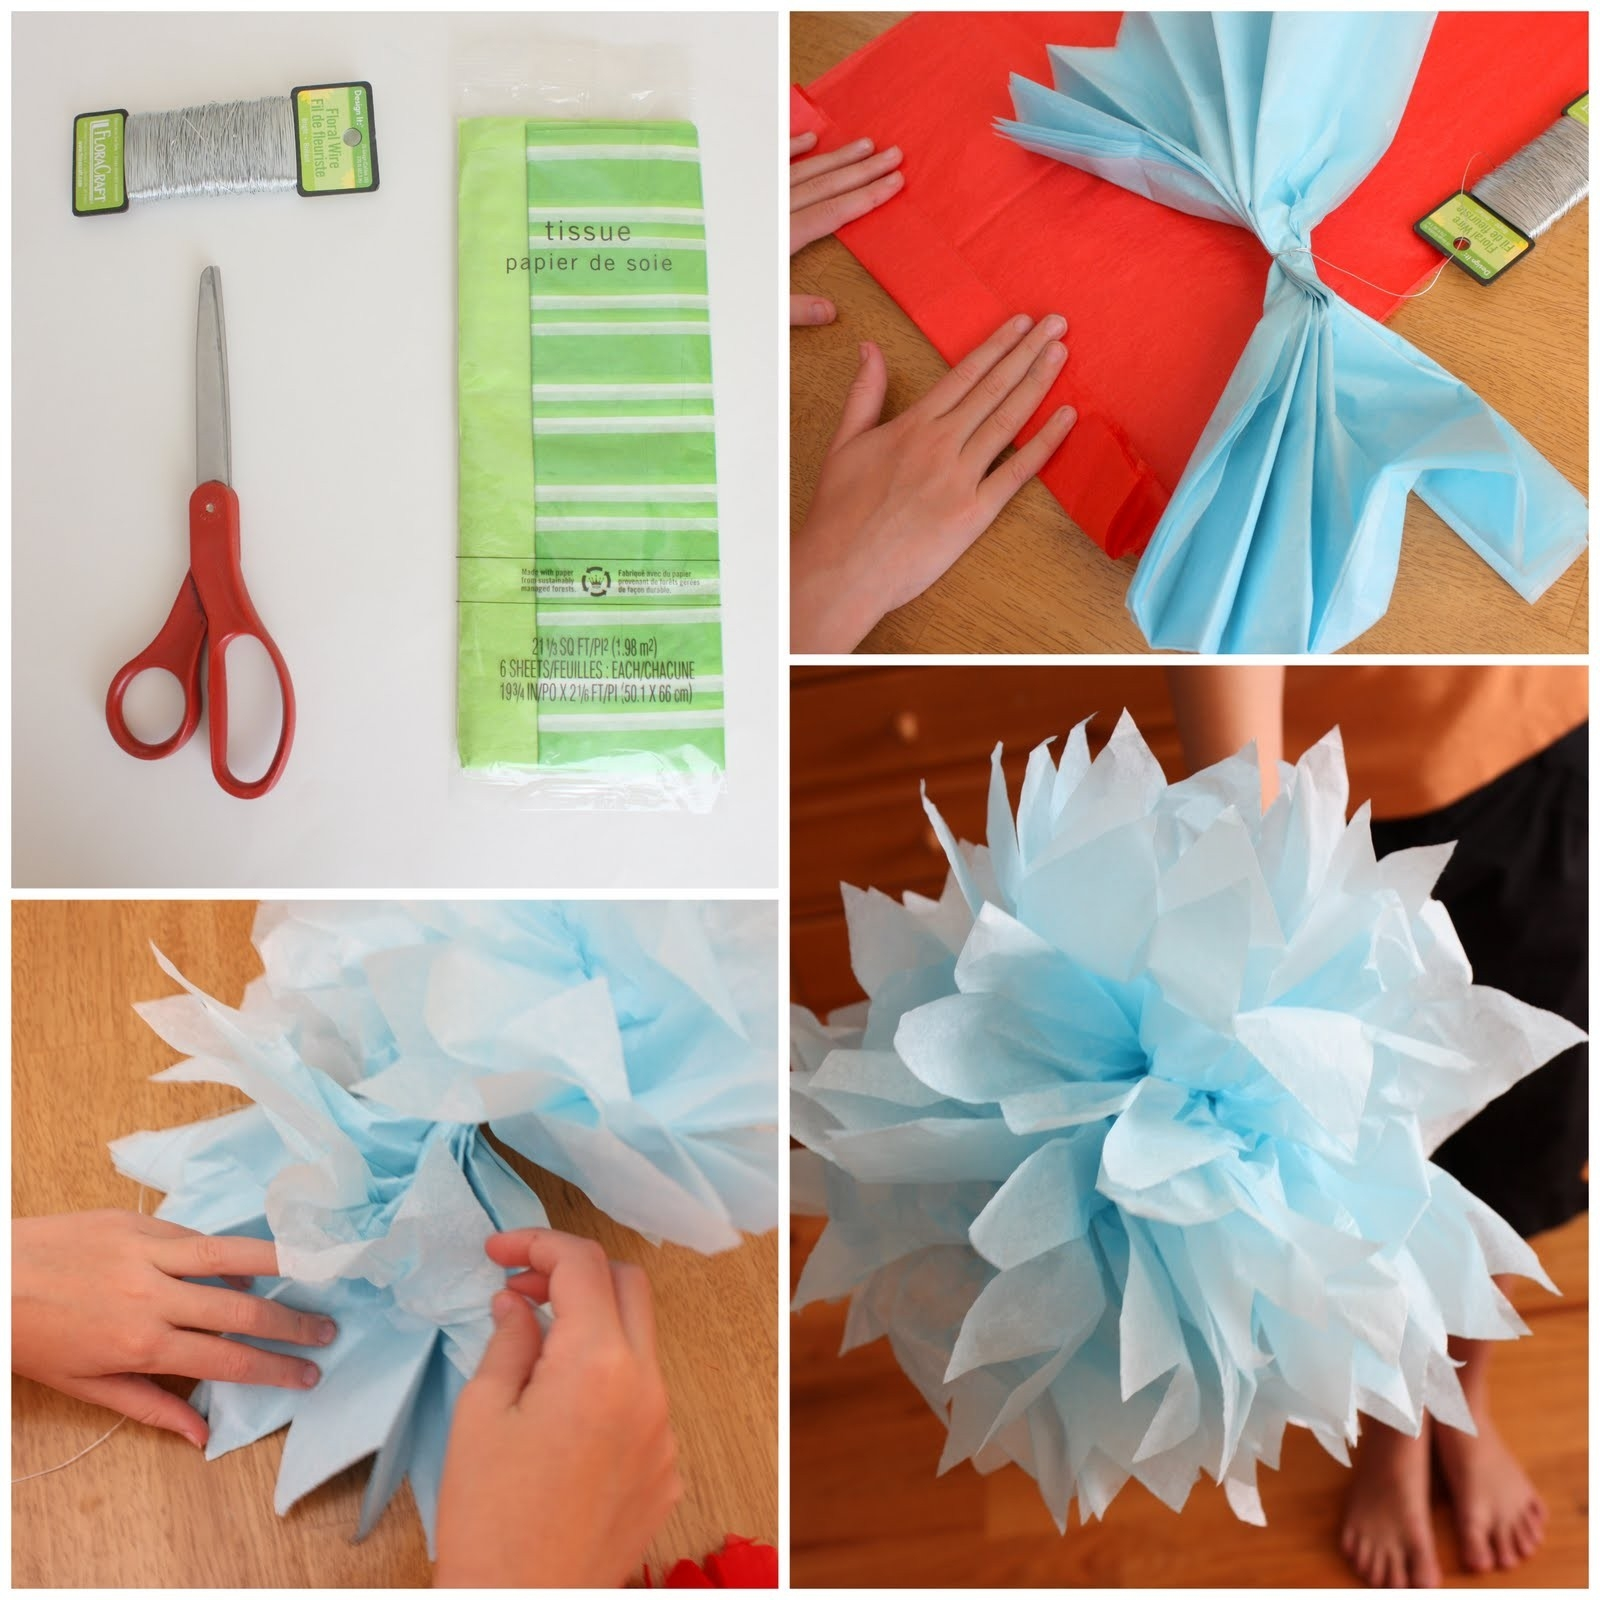 Summer Crafts With Kids Report - Diary Of A Quilter - A Quilt Blog regarding Easy Tissue Paper Crafts For Kids 27490